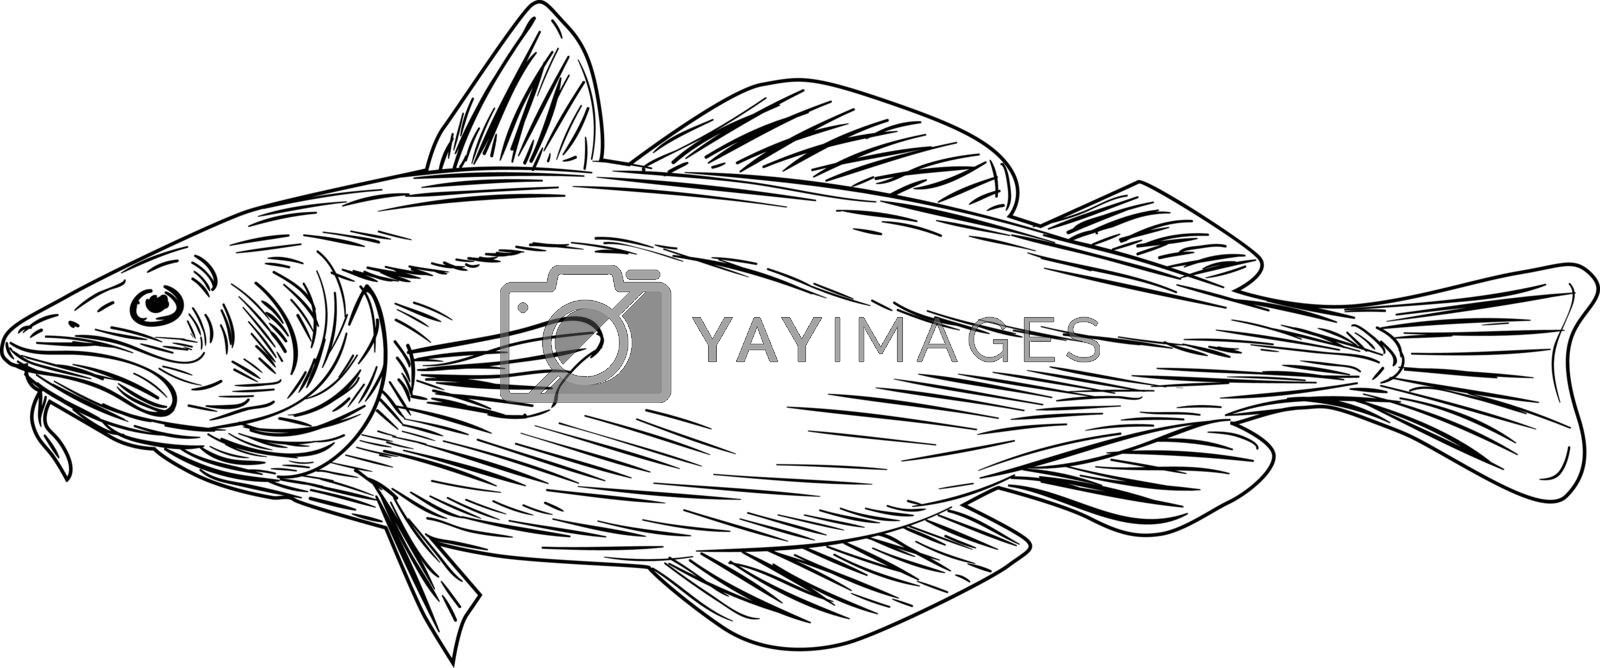 Black and white drawing illustration of an Atlantic cod, or Gadus morhua, a benthopelagic fish of the family Gadidae, also known as cod or codling viewed from the side set on isolated background.